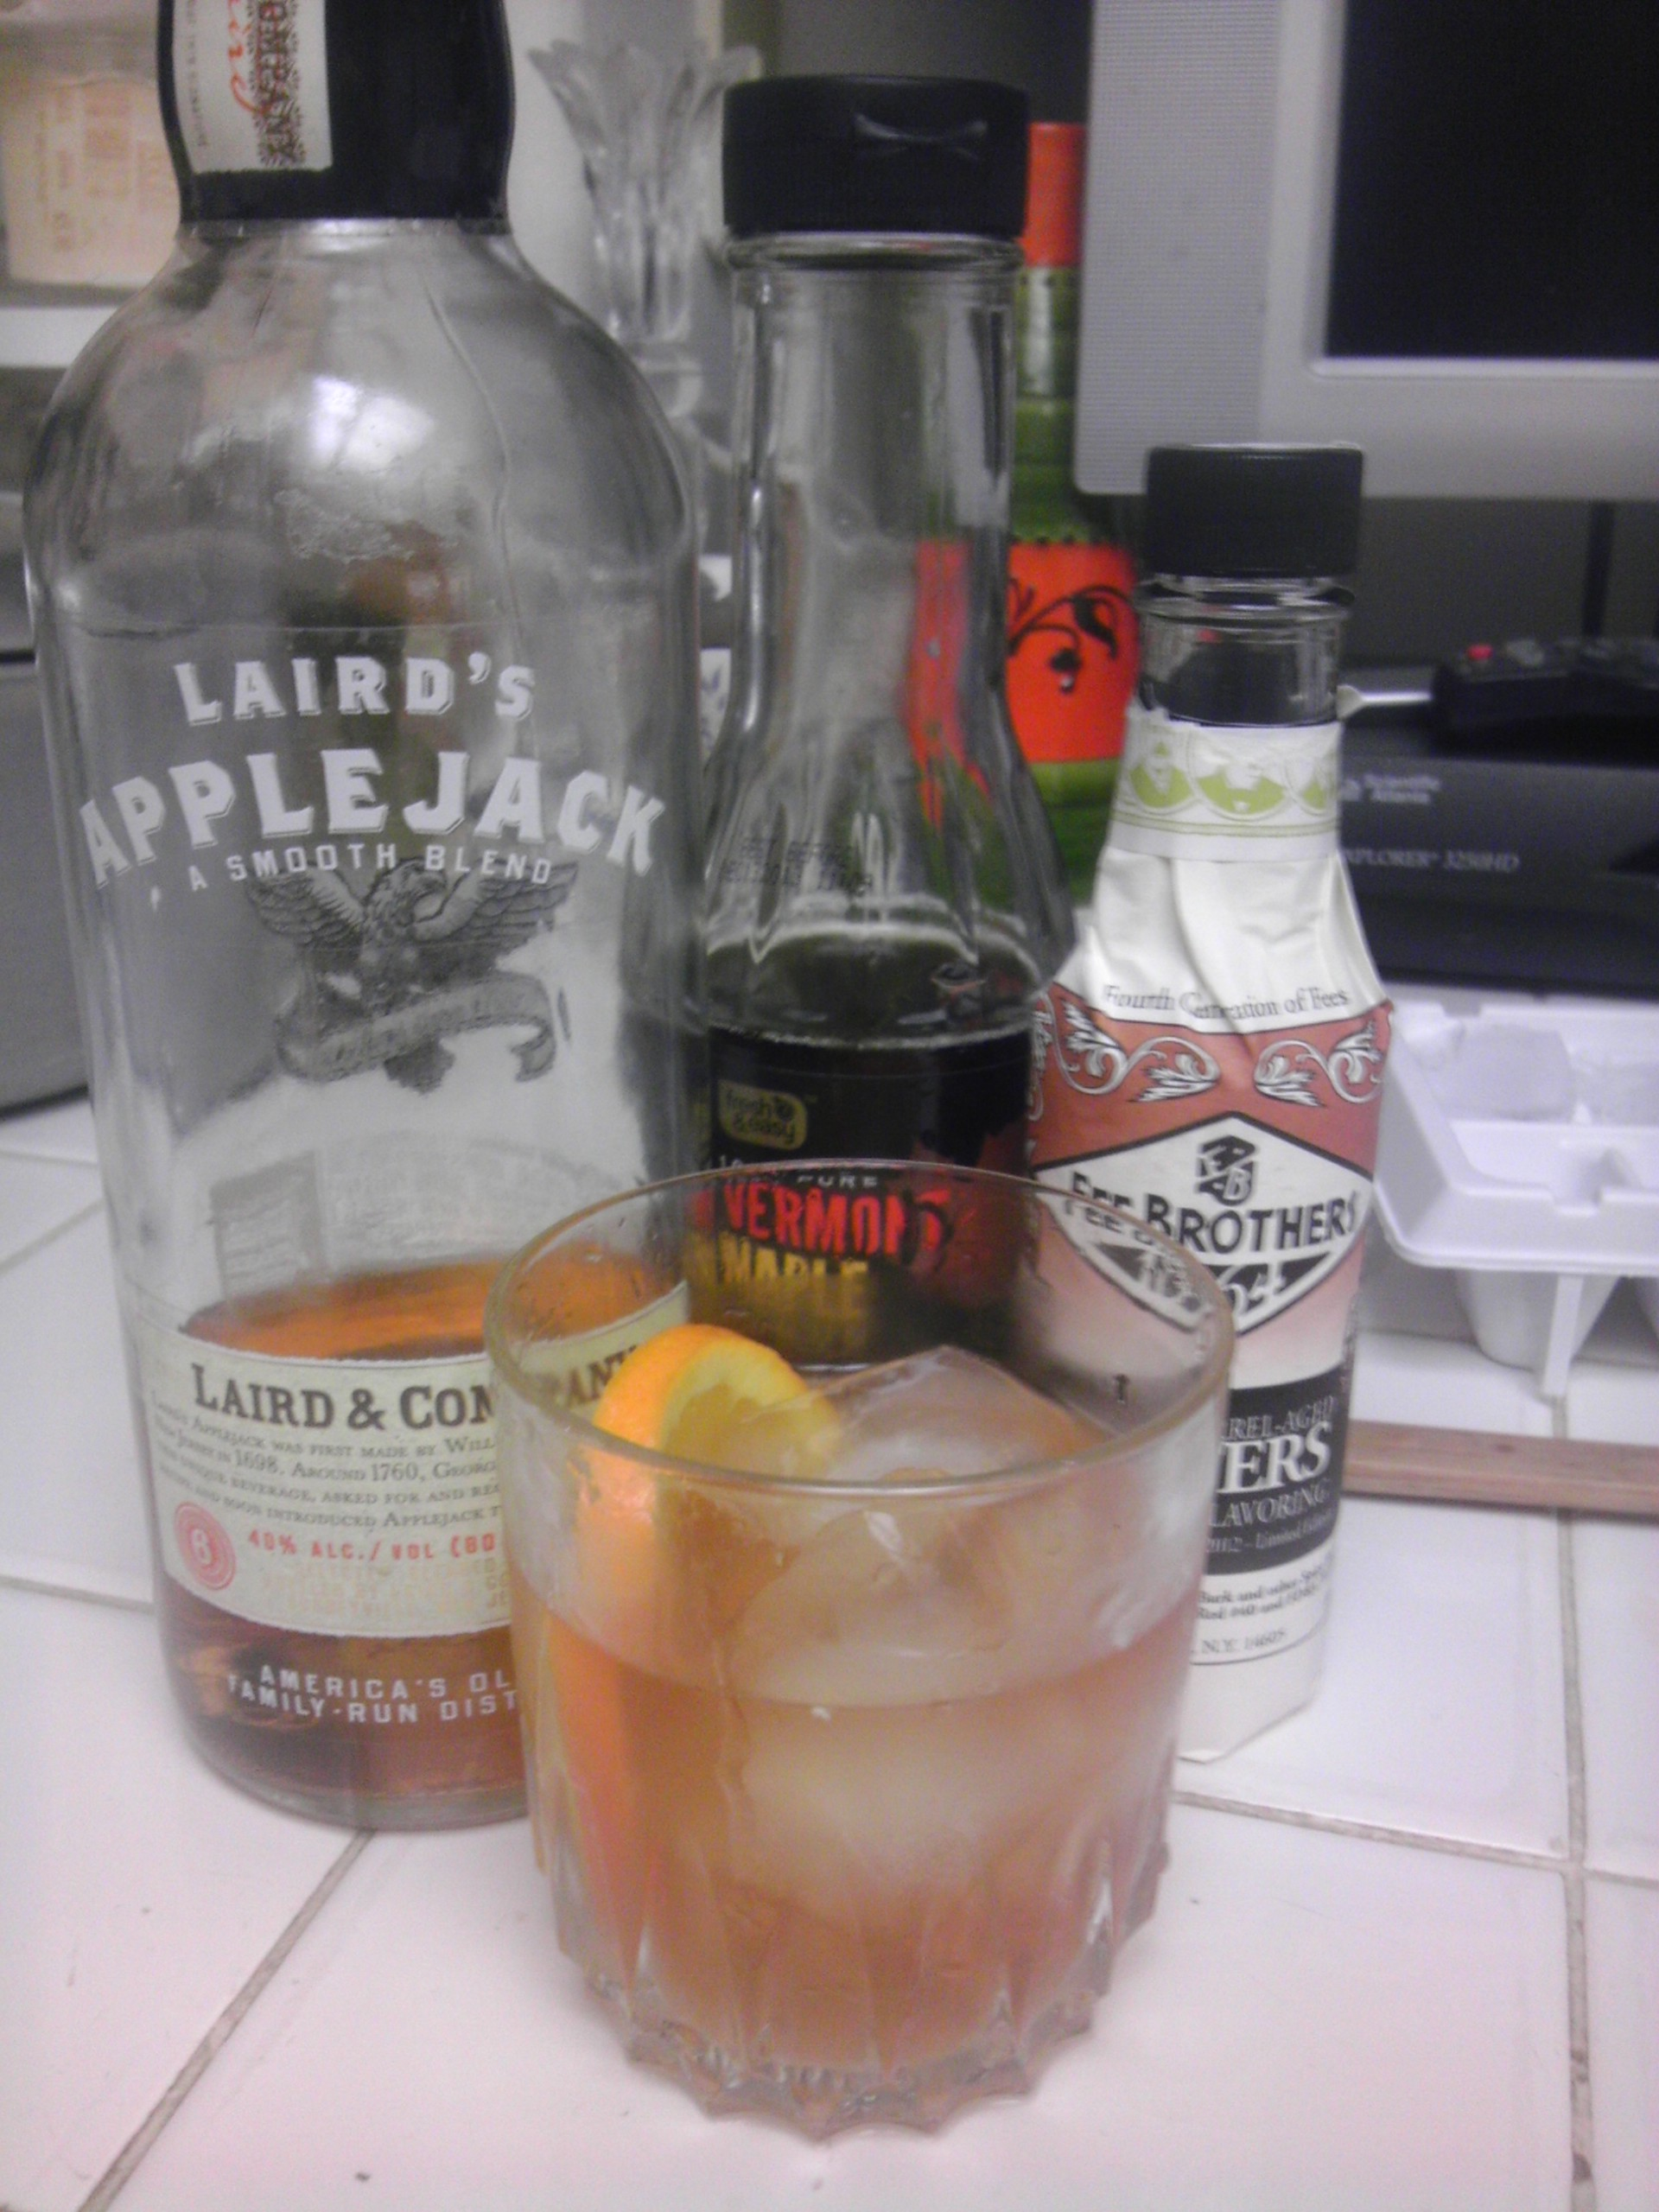 The Applejack Old Fashioned.